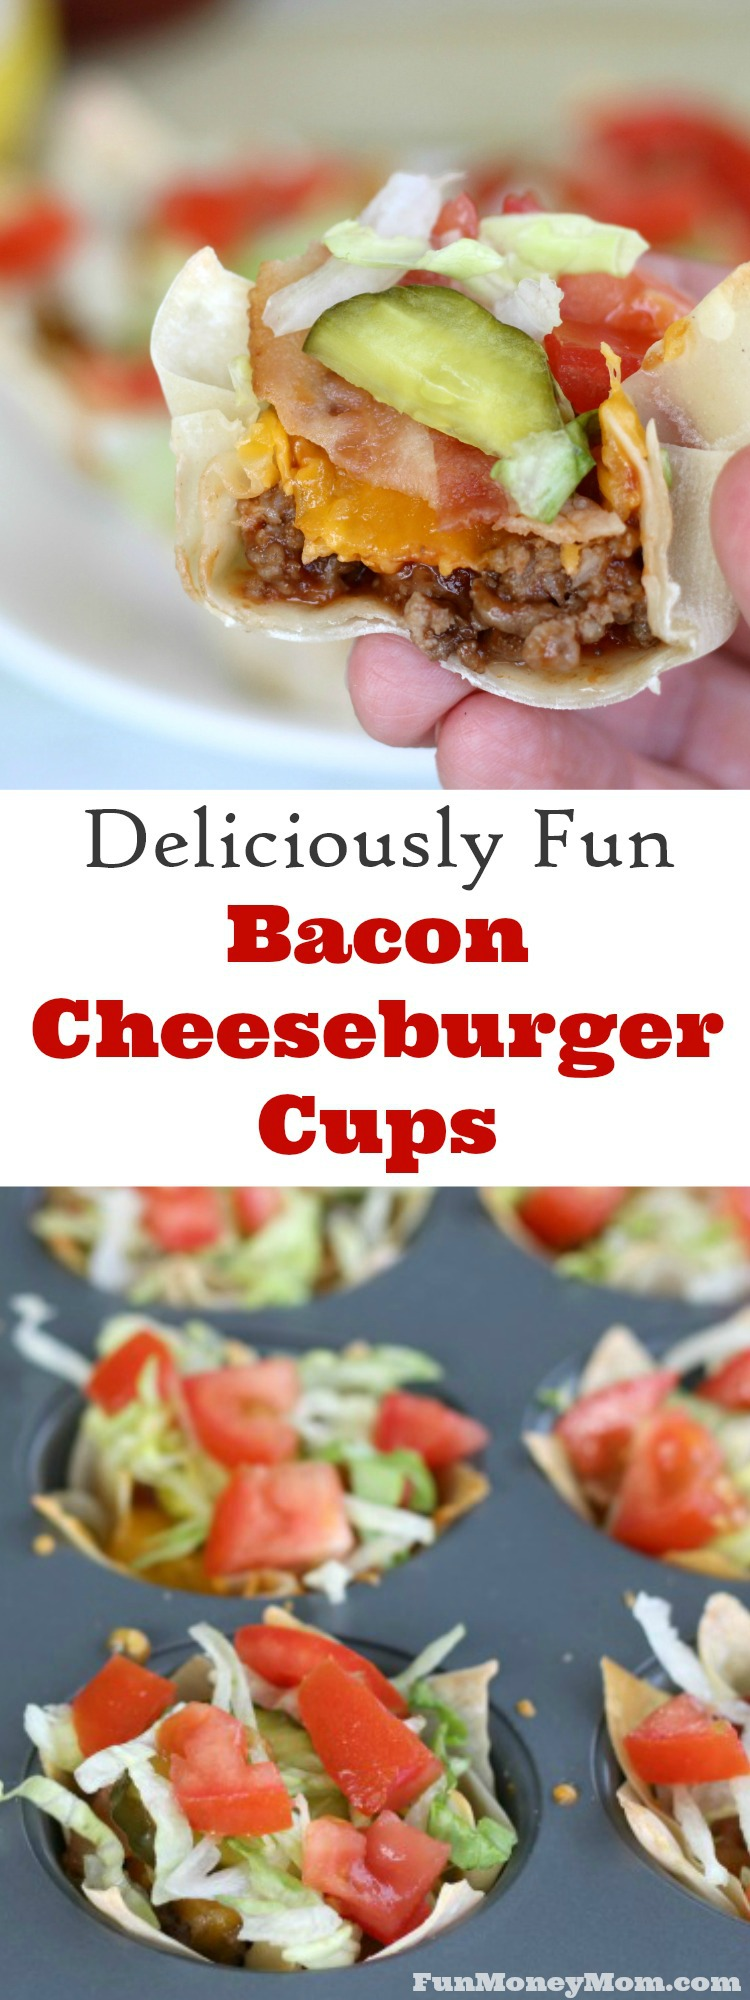 These mini Bacon Cheeseburger Cups are fun and delicious and can be served as a new twist on dinner or a fabulous party food. Either way, they're sure to be a hit!